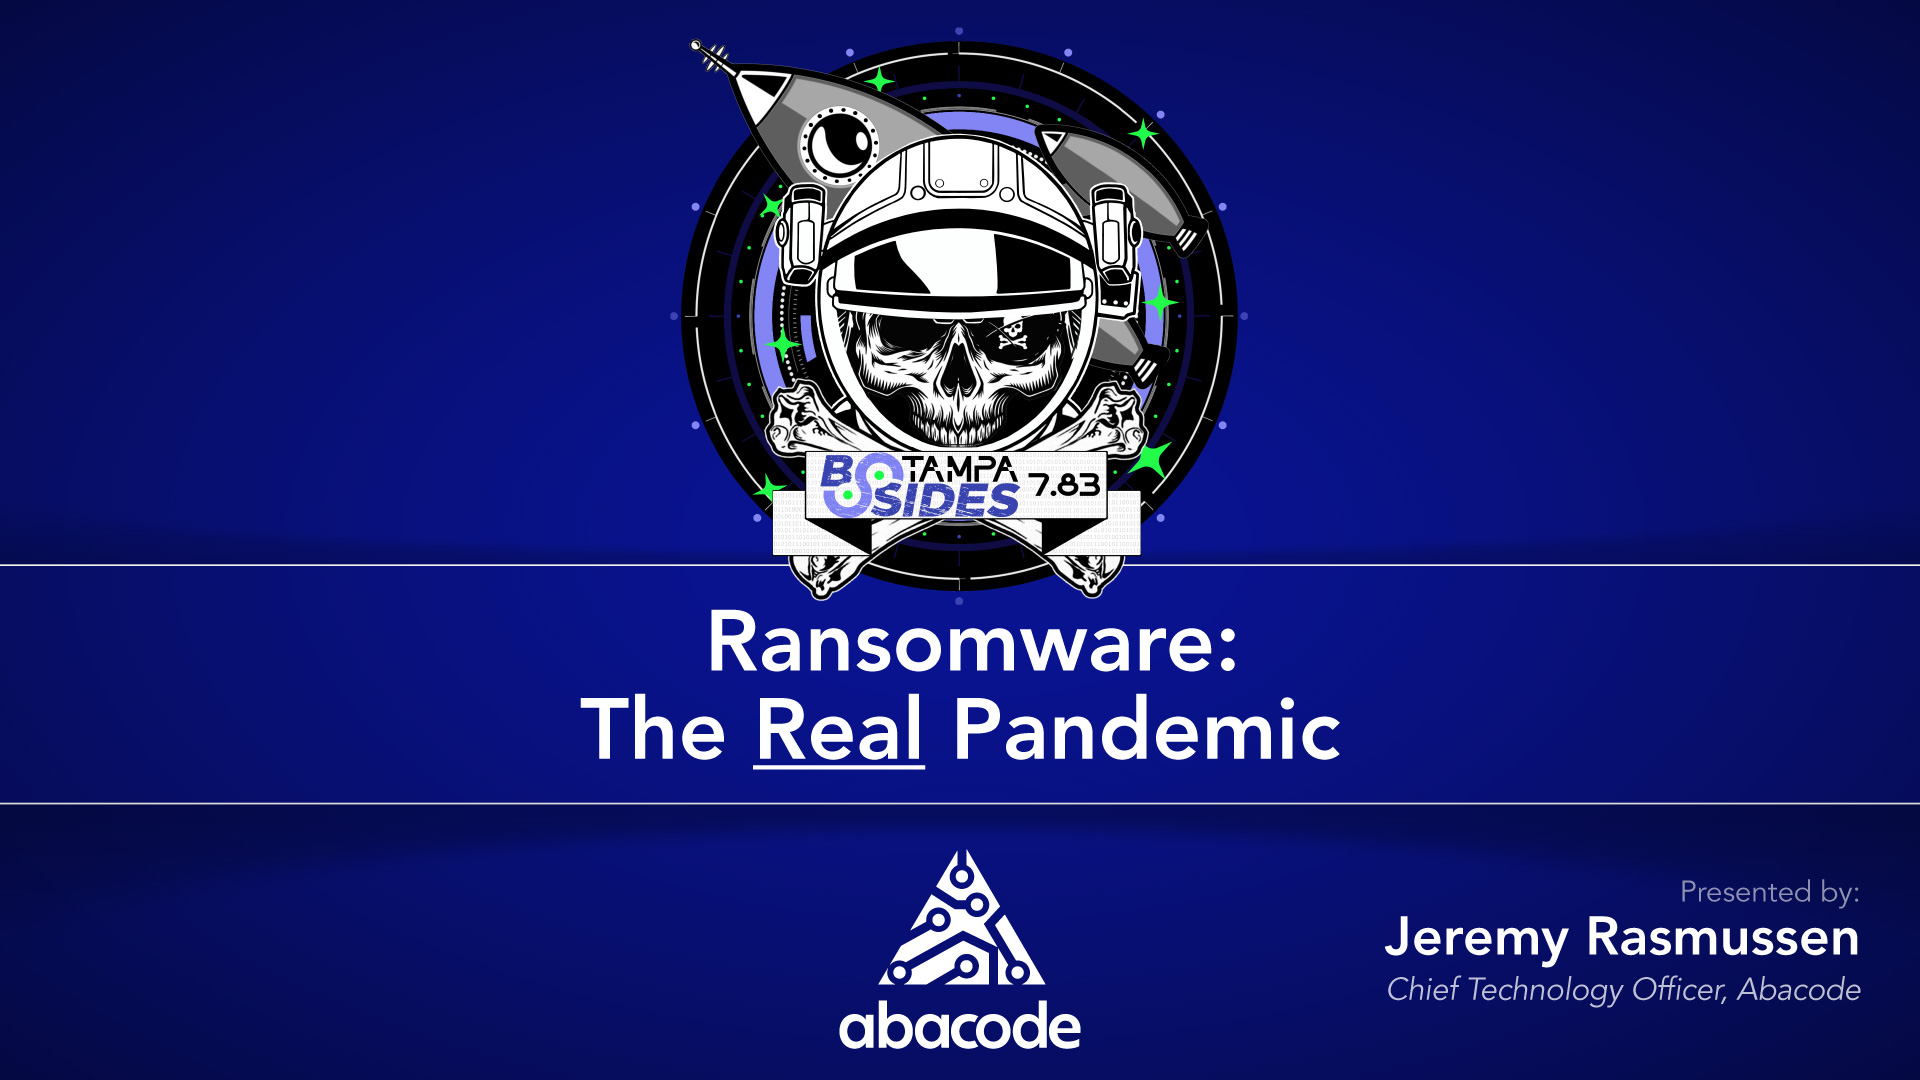 Abacode Events- Ransomware: The Real Pandemic - Jeremy Rasumssen